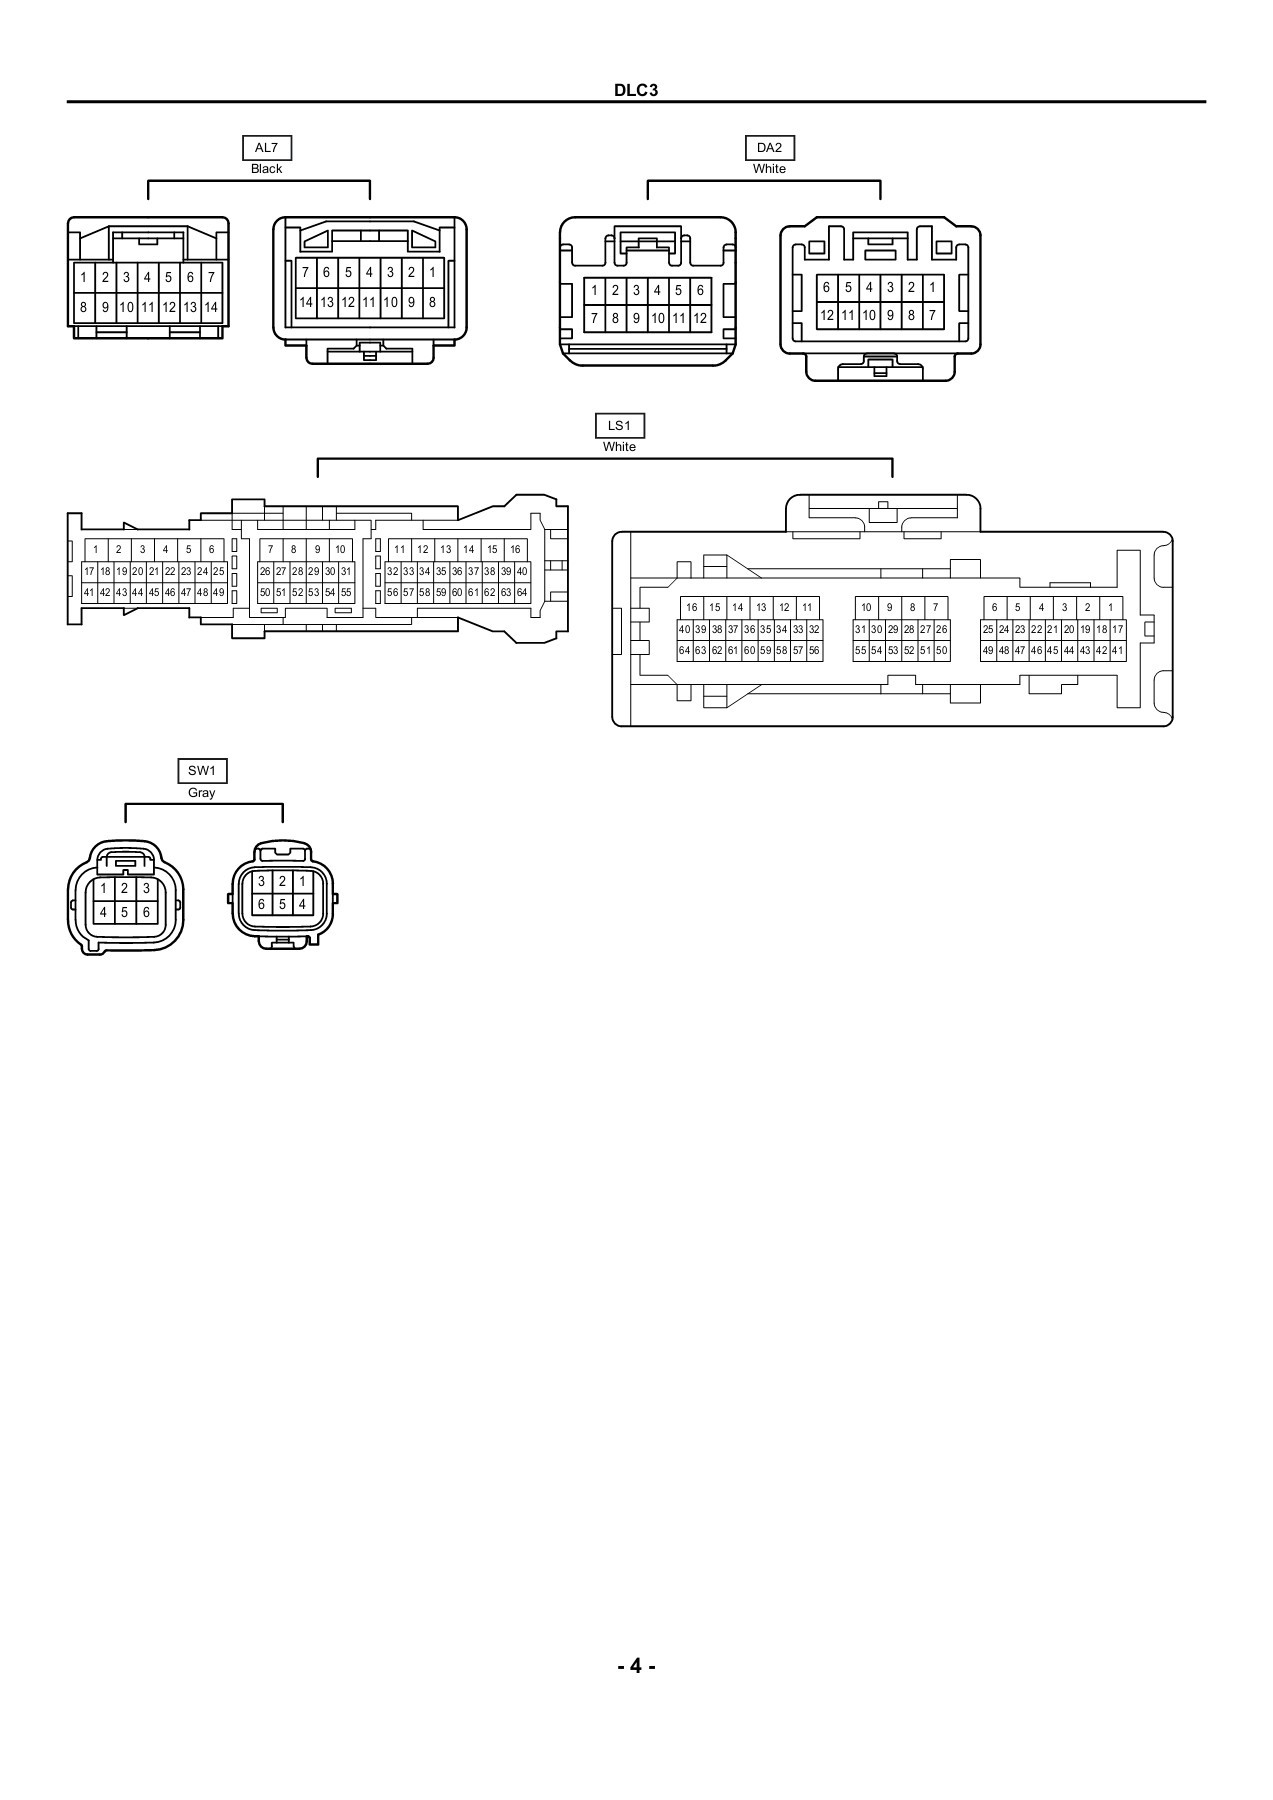 small resolution of toyota prius 2010 electrical wiring diagrams pages 151 200 text toyota prius 2010 electrical wiring diagrams